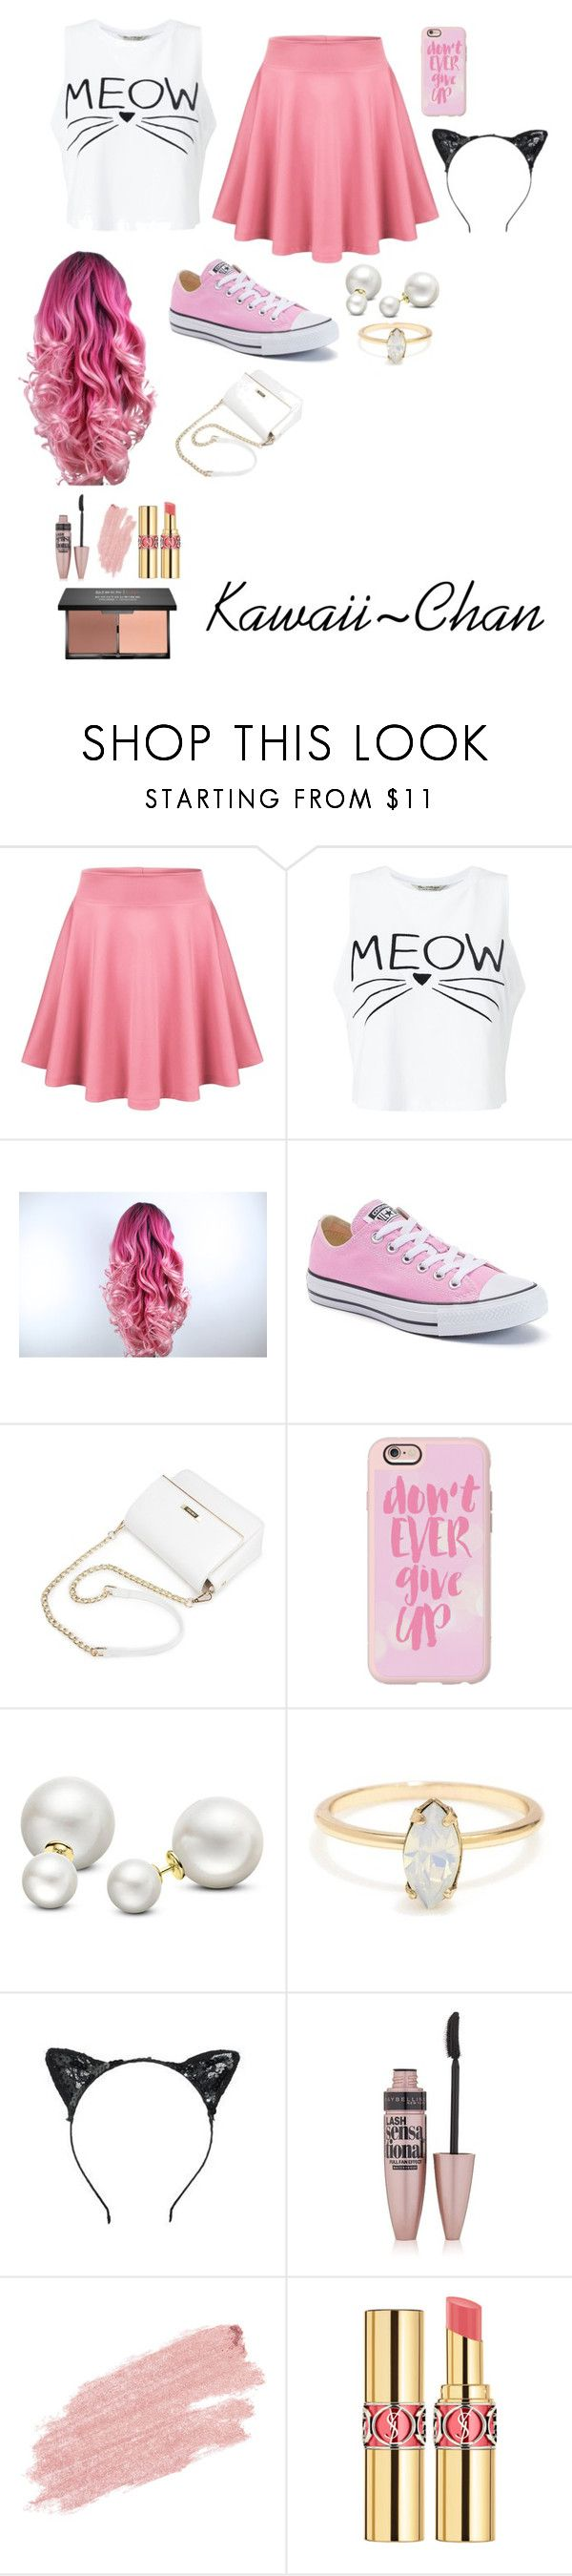 """""""Kawaii~Chan: My Street, Minecraft Diaries, PhineoxDrop High, Love~Love Paradise: Aphmau"""" by kittychbrocks ❤ liked on Polyvore featuring Miss Selfridge, Converse, Casetify, Allurez, Maybelline, Jane Iredale, Yves Saint Laurent and blacklUp"""